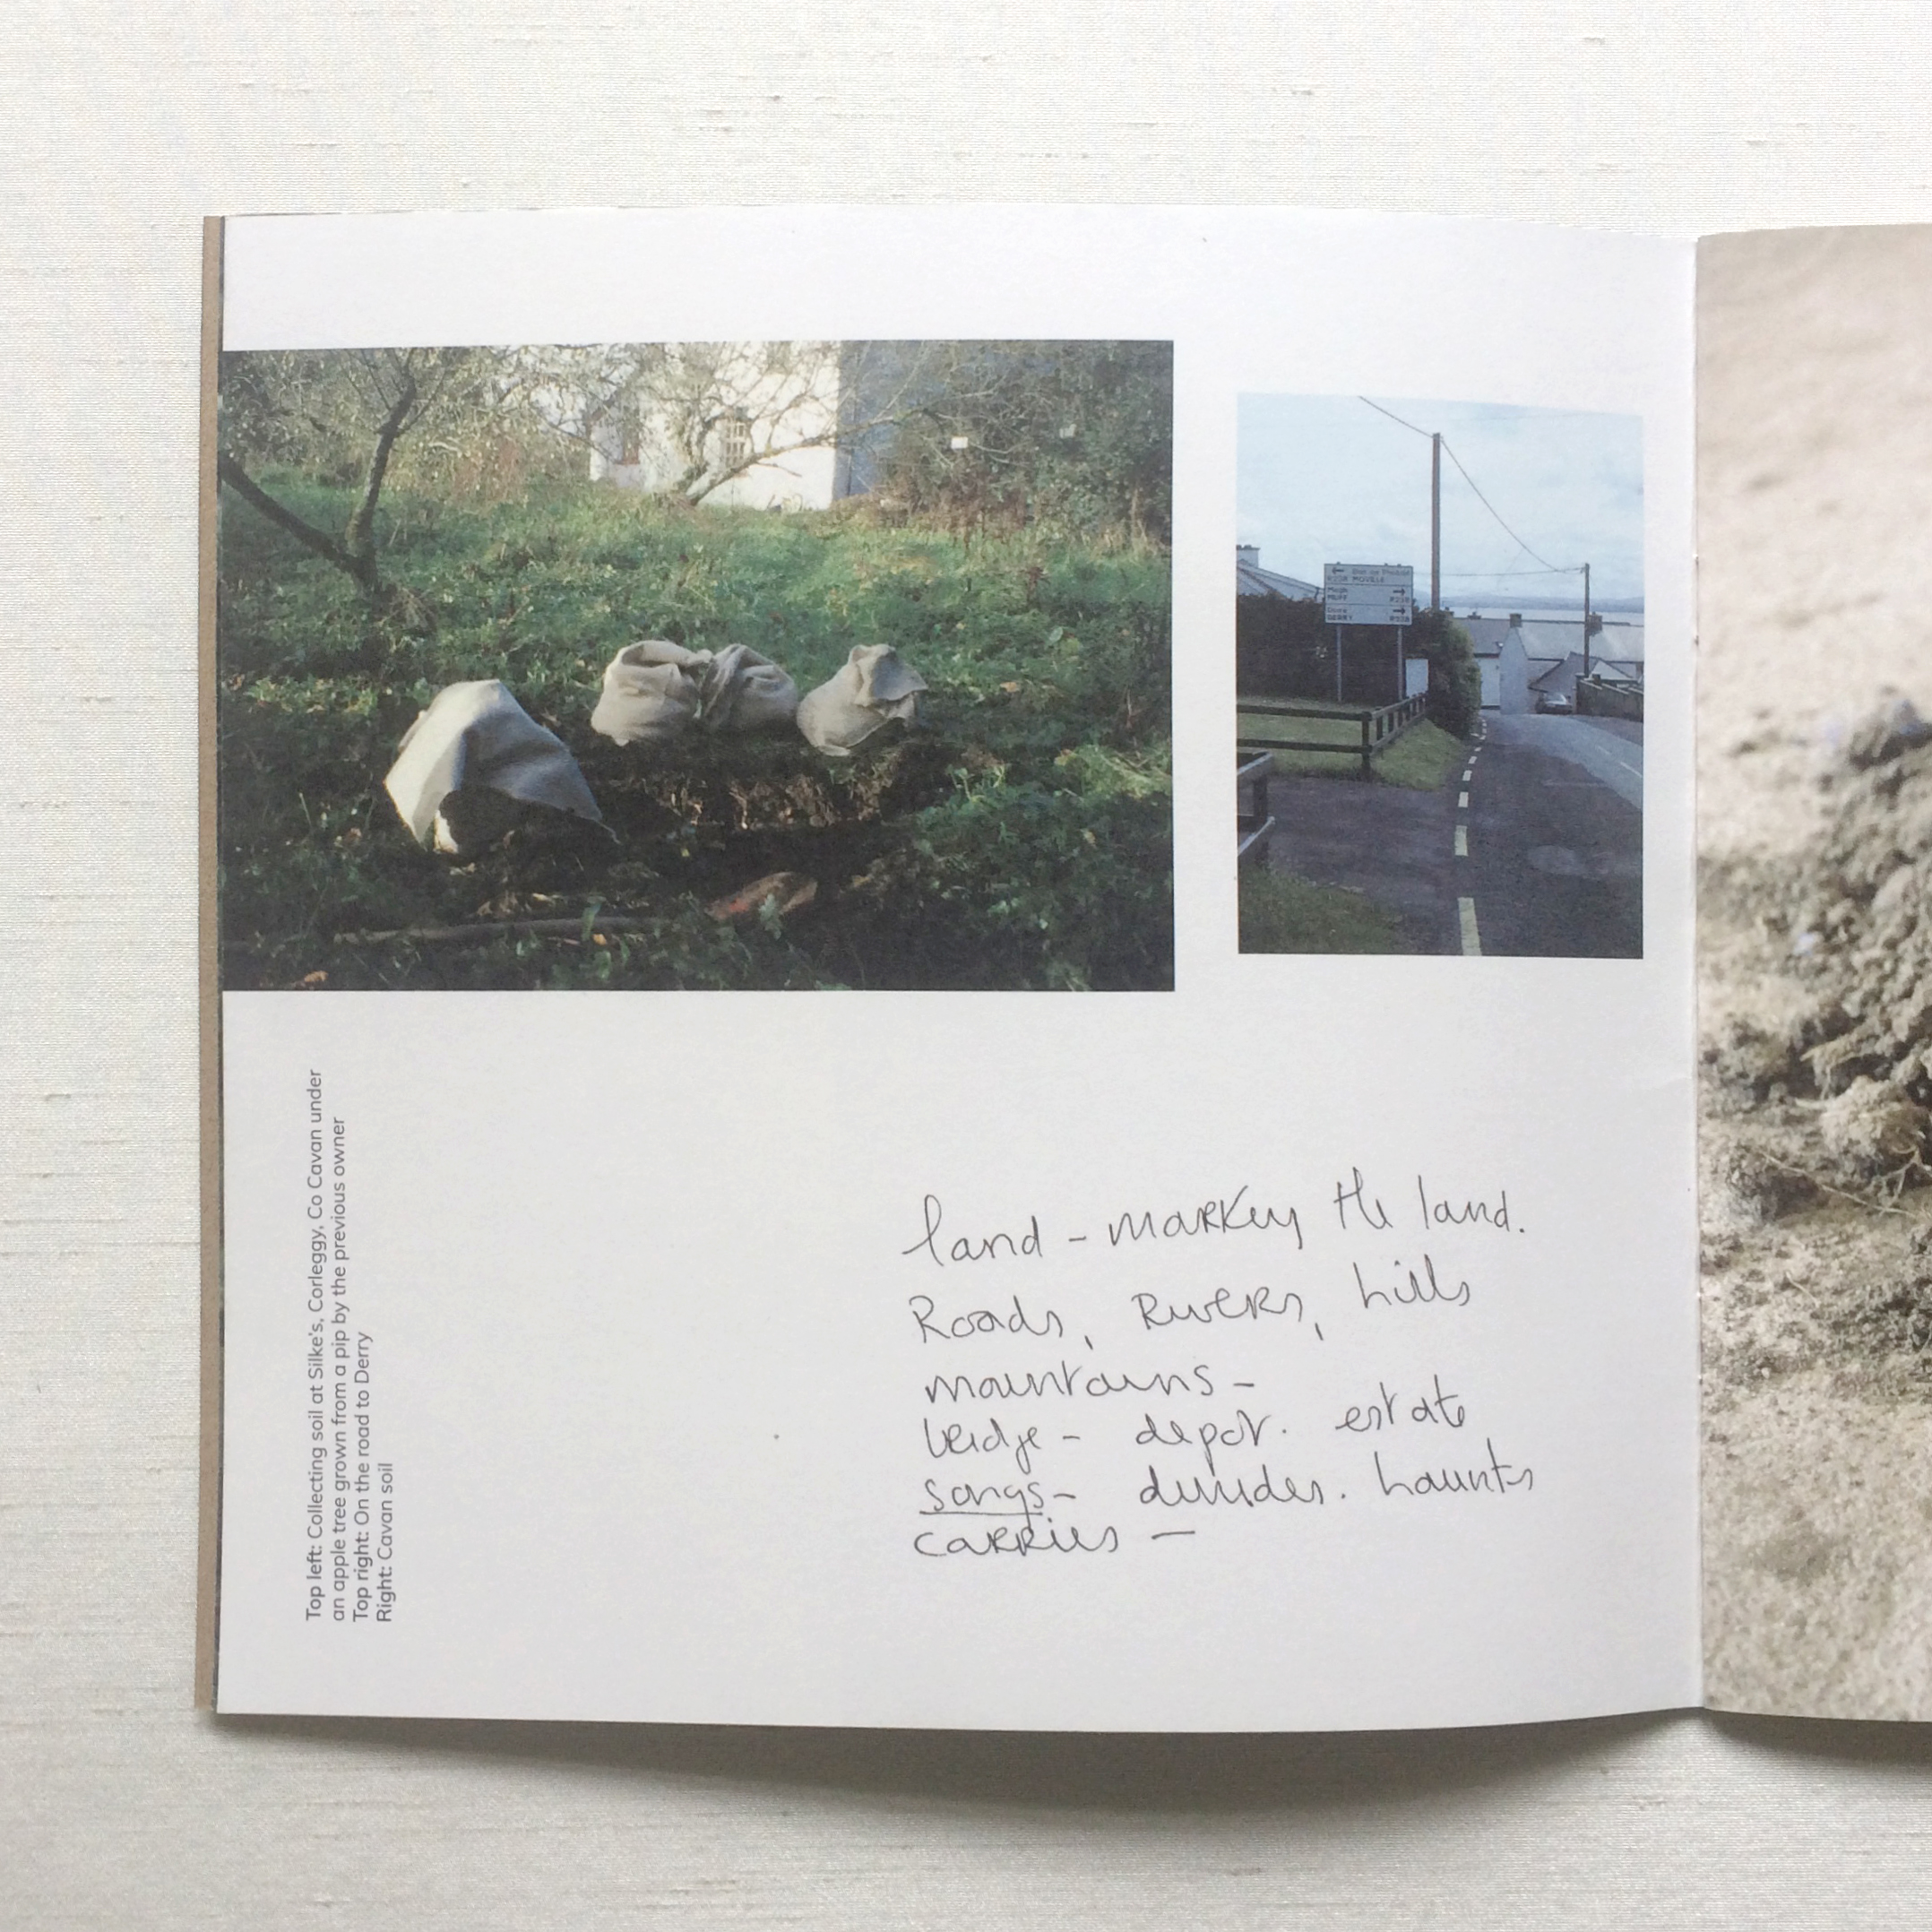 Artist catalogue graphic design with photographs, written text and titles on page